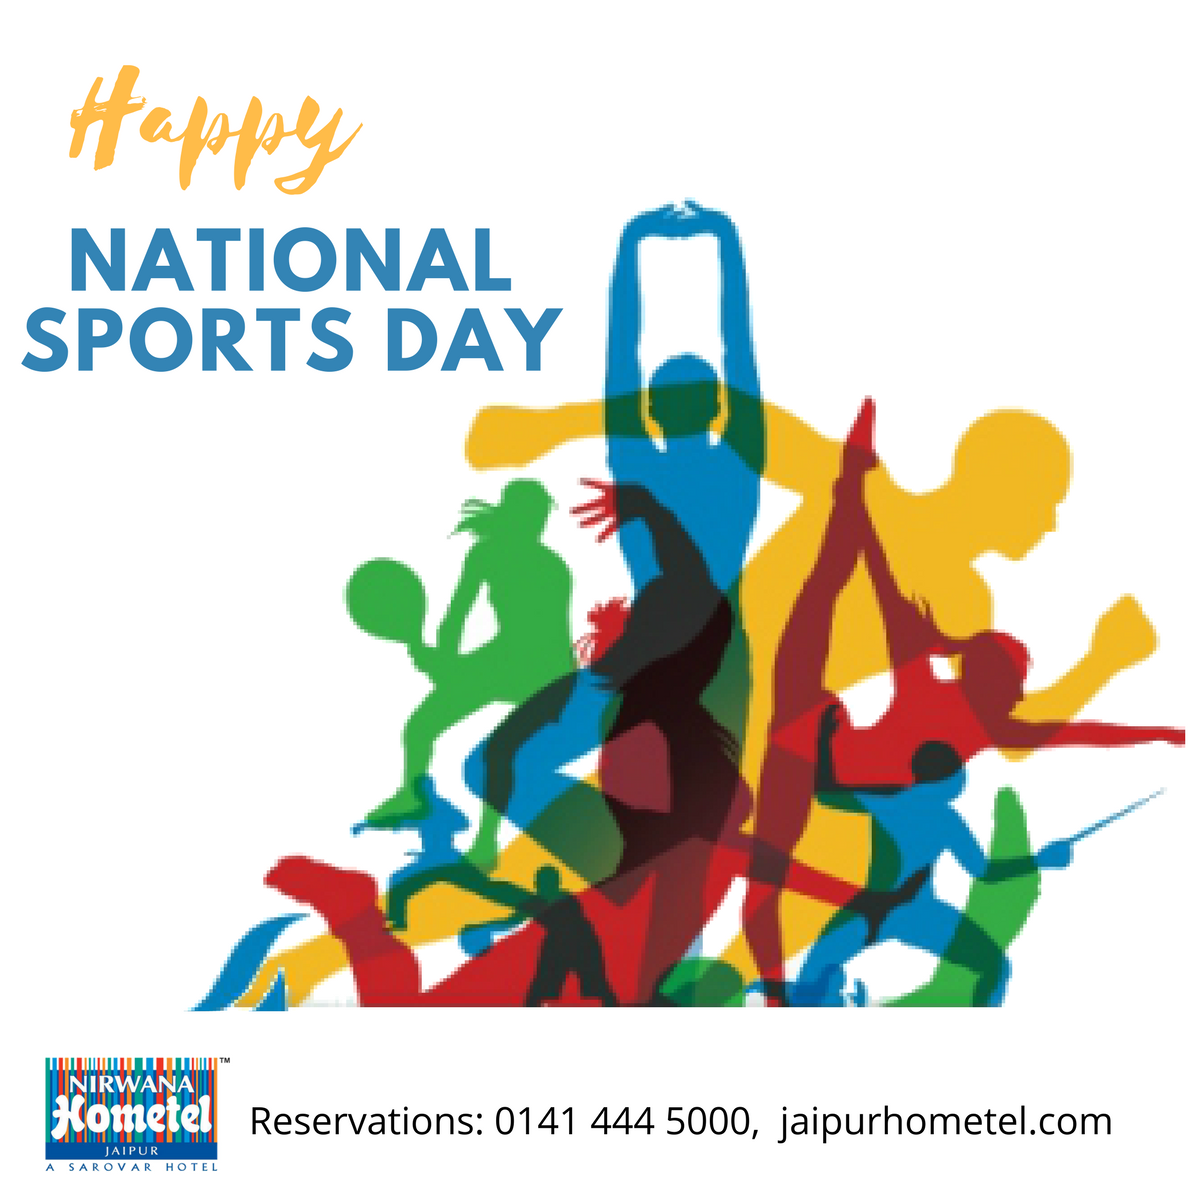 The National Sports Day Is Observed Every Year Across India On 29th August To Mark The Birth Anniversary Of The Legendary National Sports Day Sports Day Sports